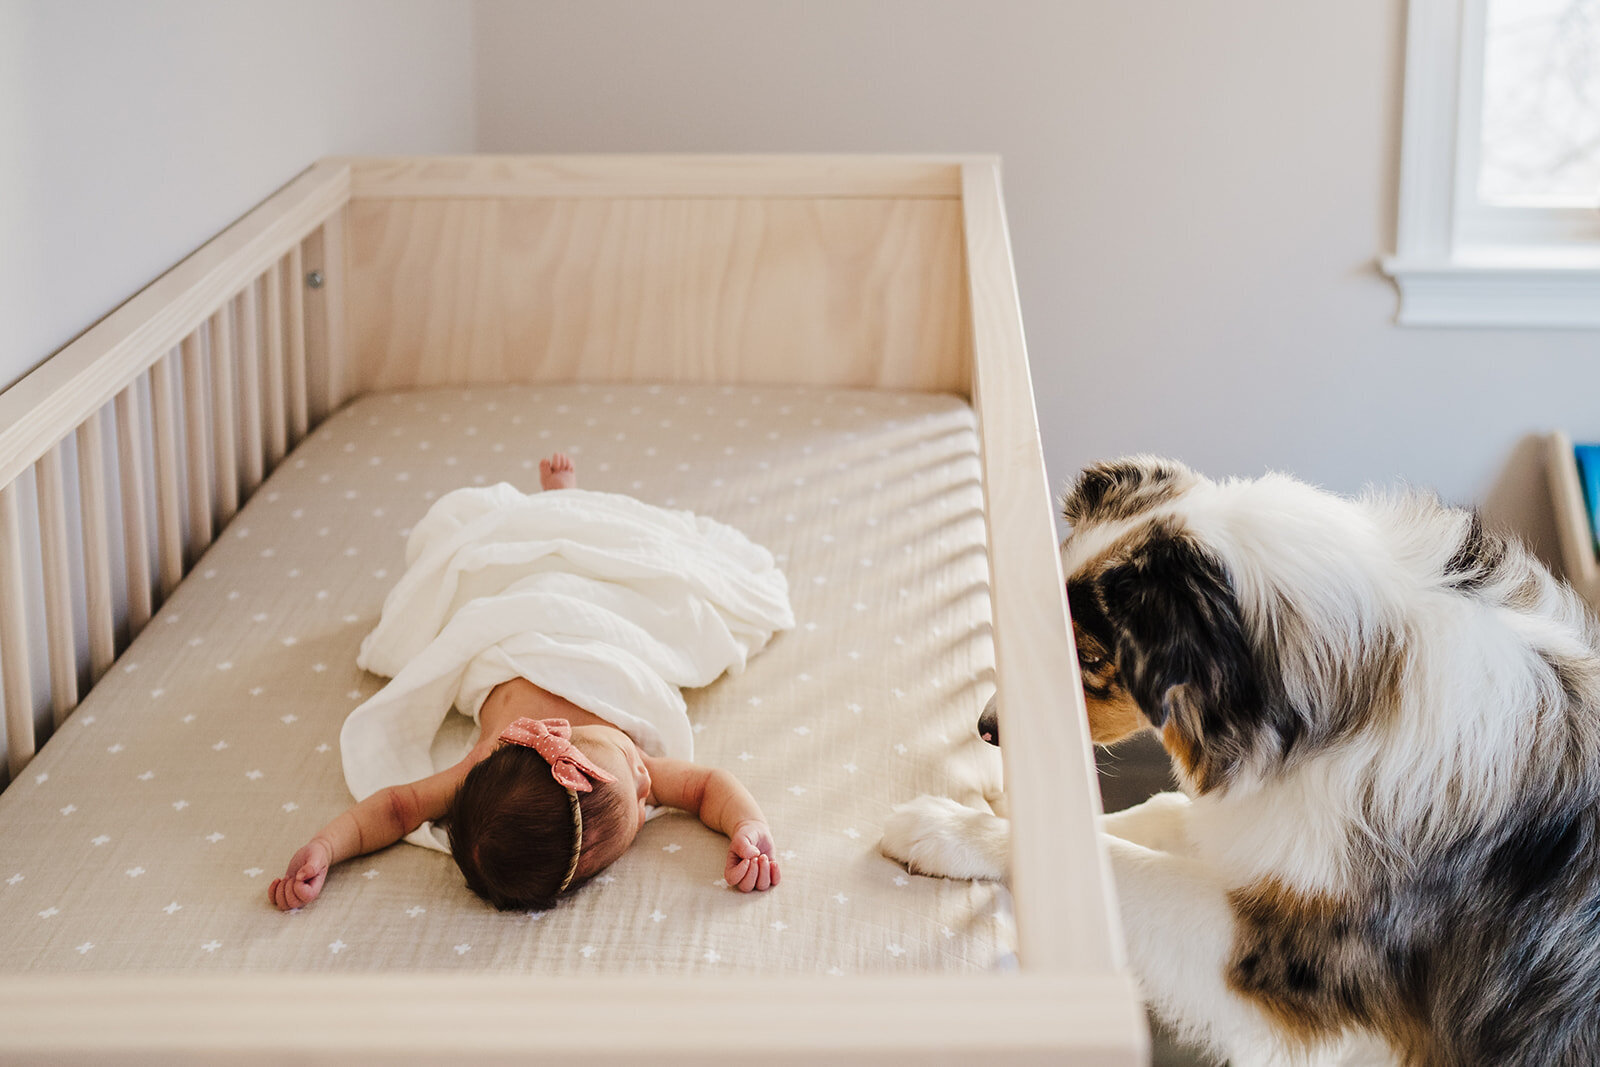 dog peeks into crib where newborn sleeps